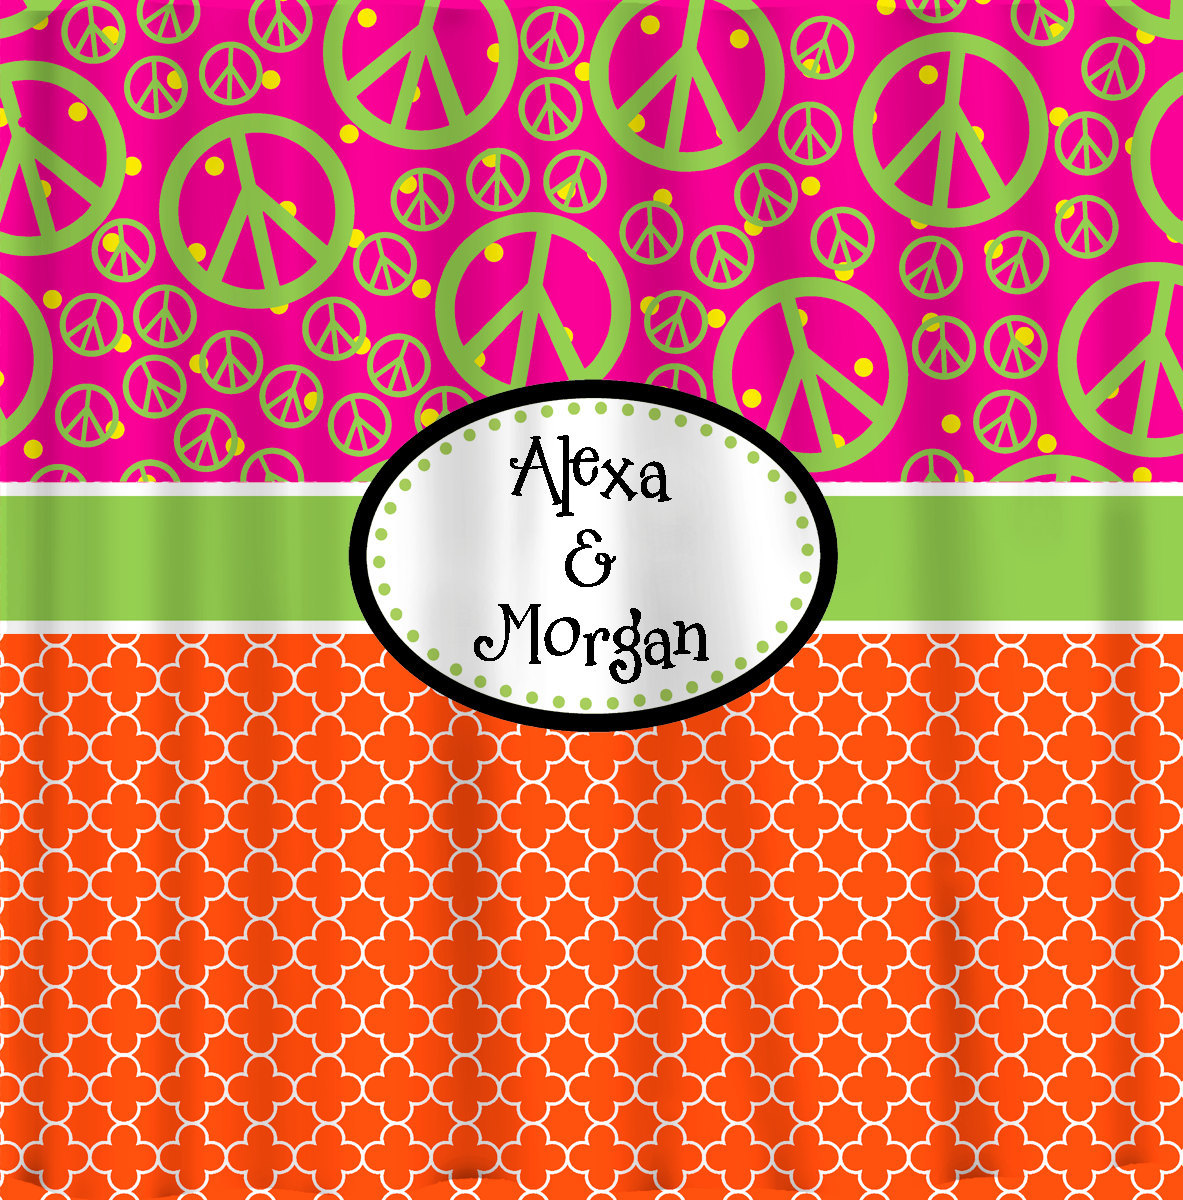 Custom Personalized Quatrefoil Shower Curtain - With Peace Comb option, Hot Pink